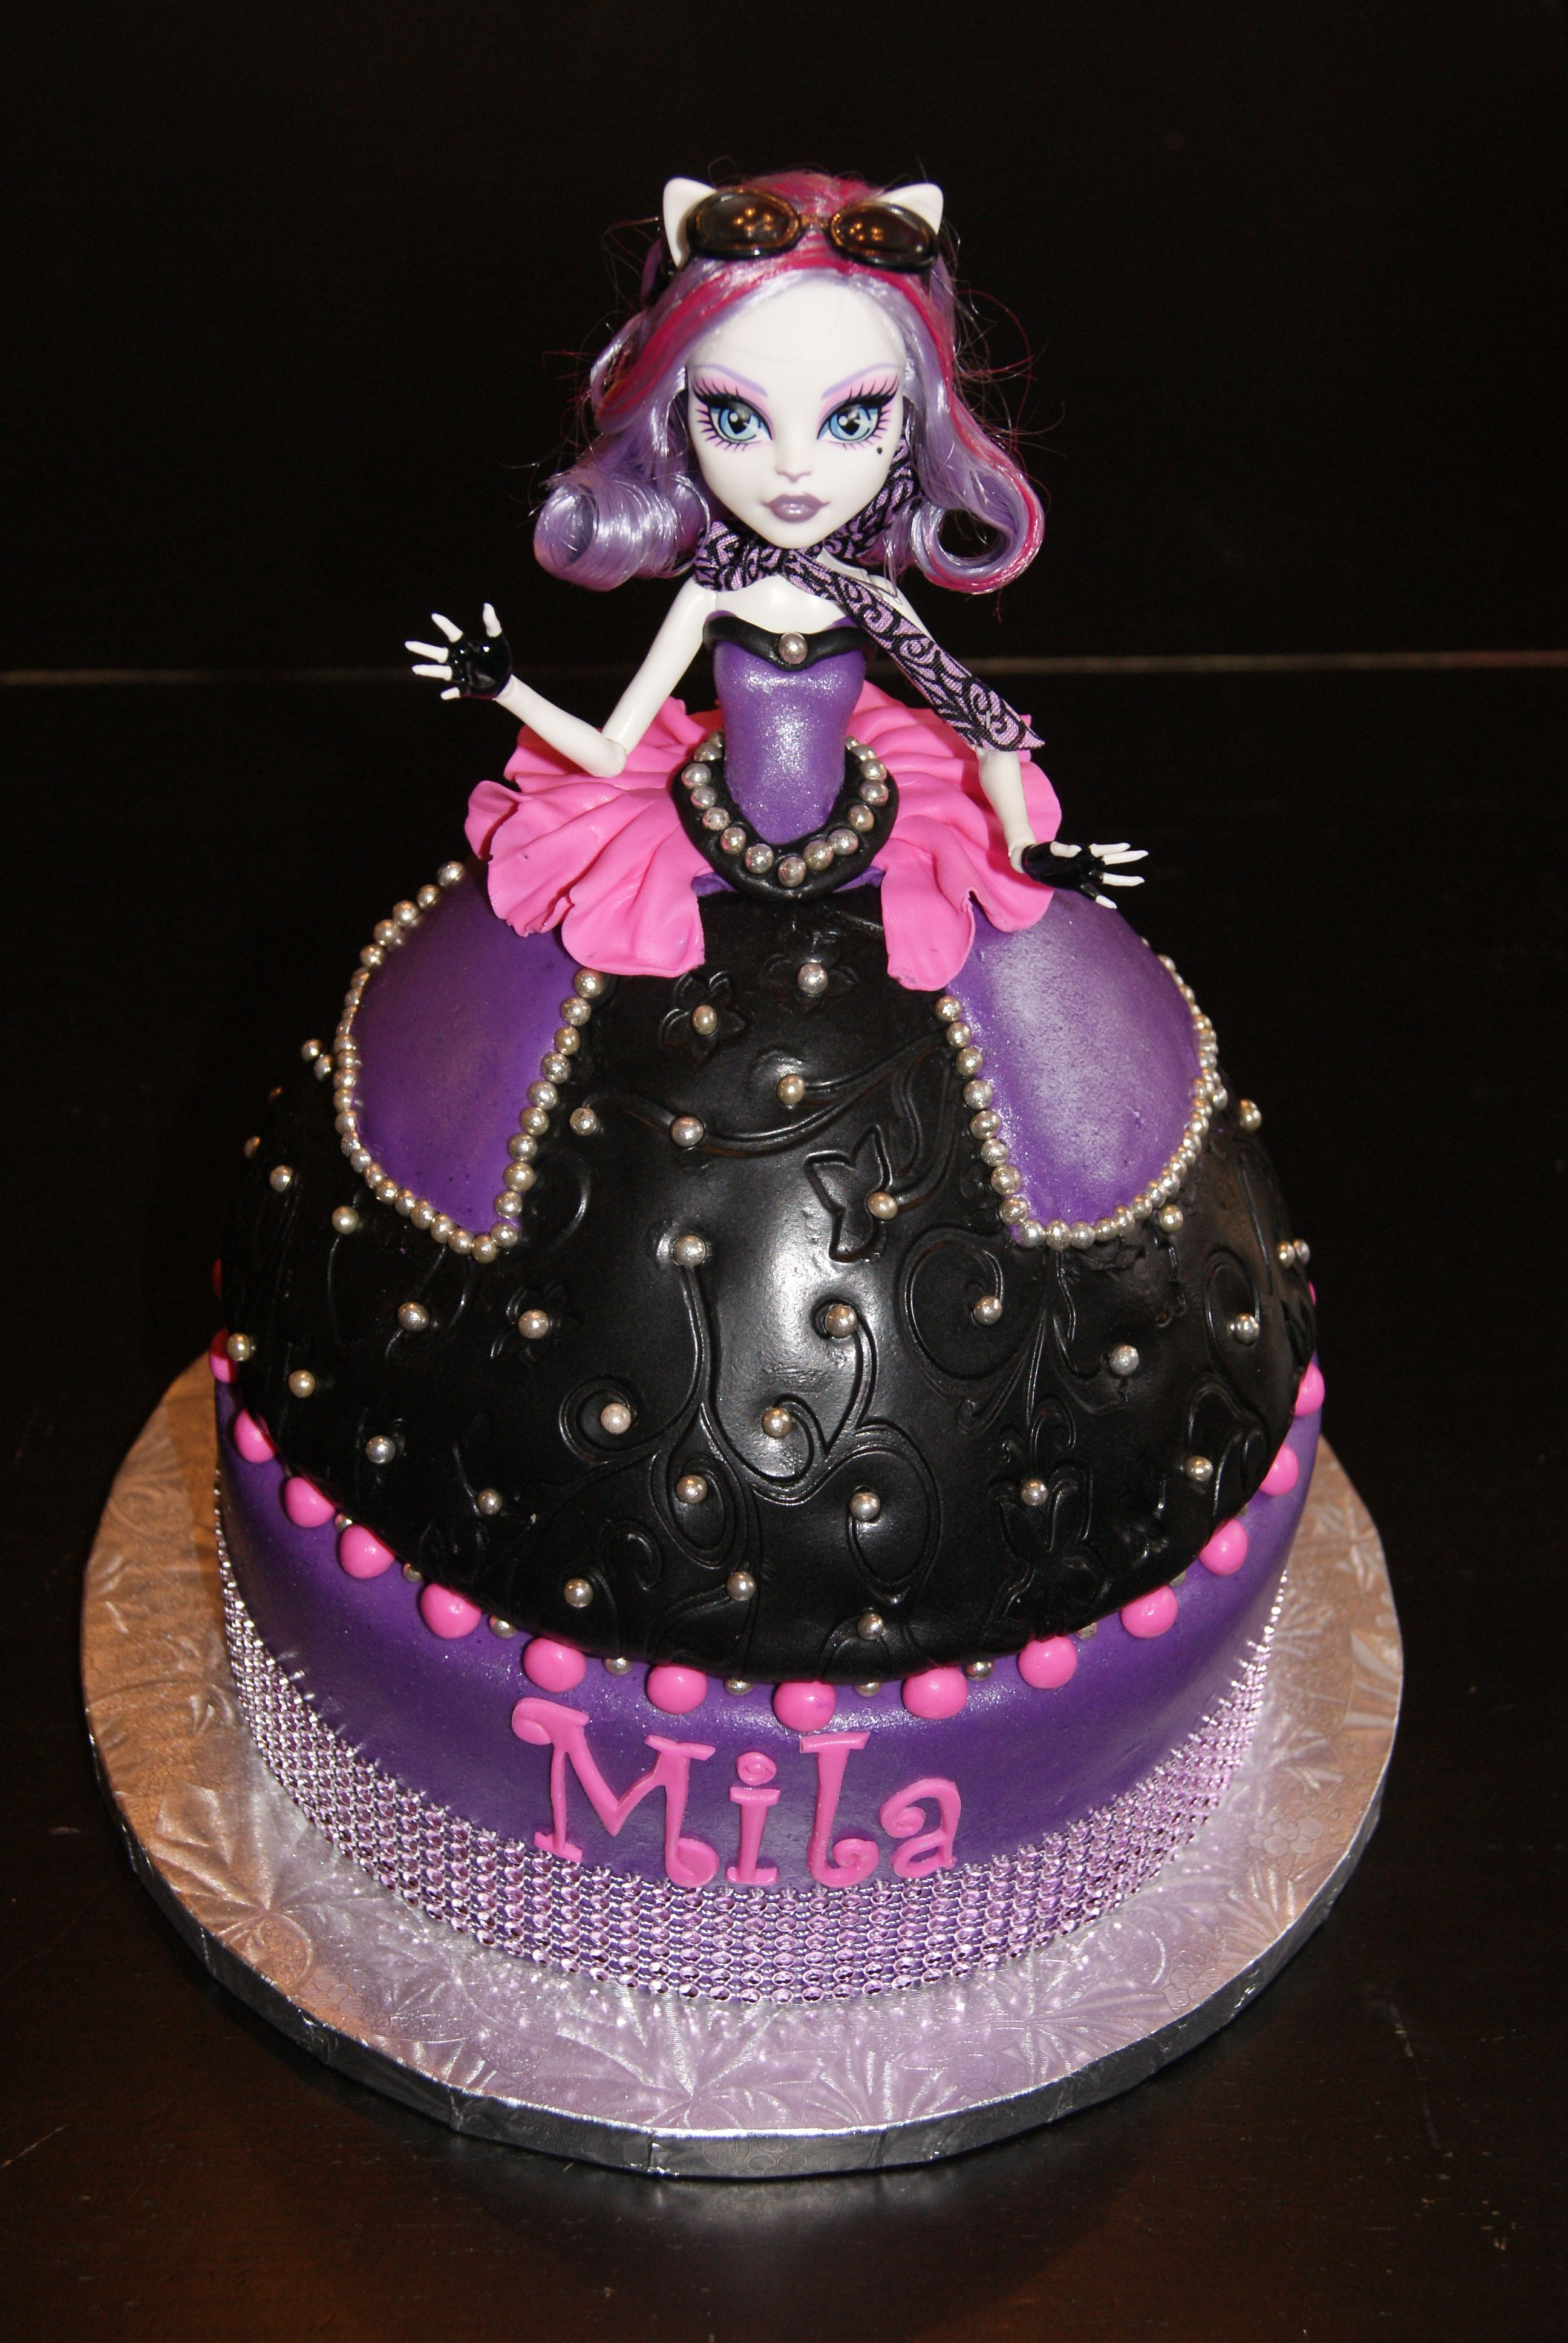 Tremendous Monster High Doll Cake Contessascakes Weebly Com Monster Cake Personalised Birthday Cards Sponlily Jamesorg